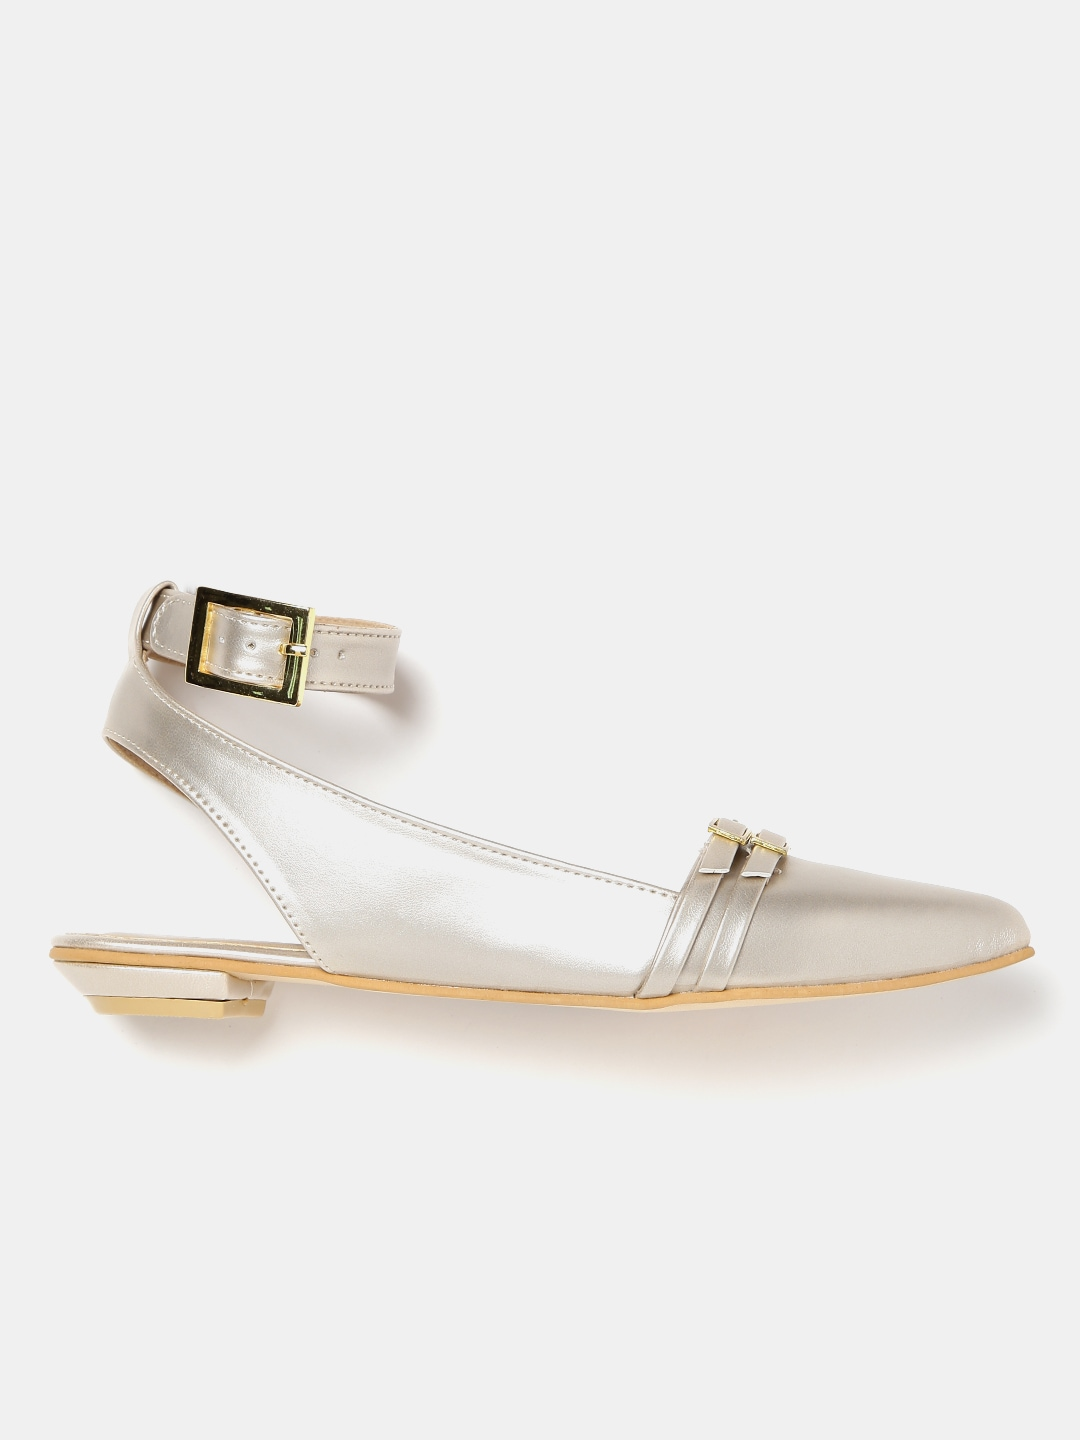 DressBerry Women Muted Gold-Toned Pointed-Toe Flat Shoes